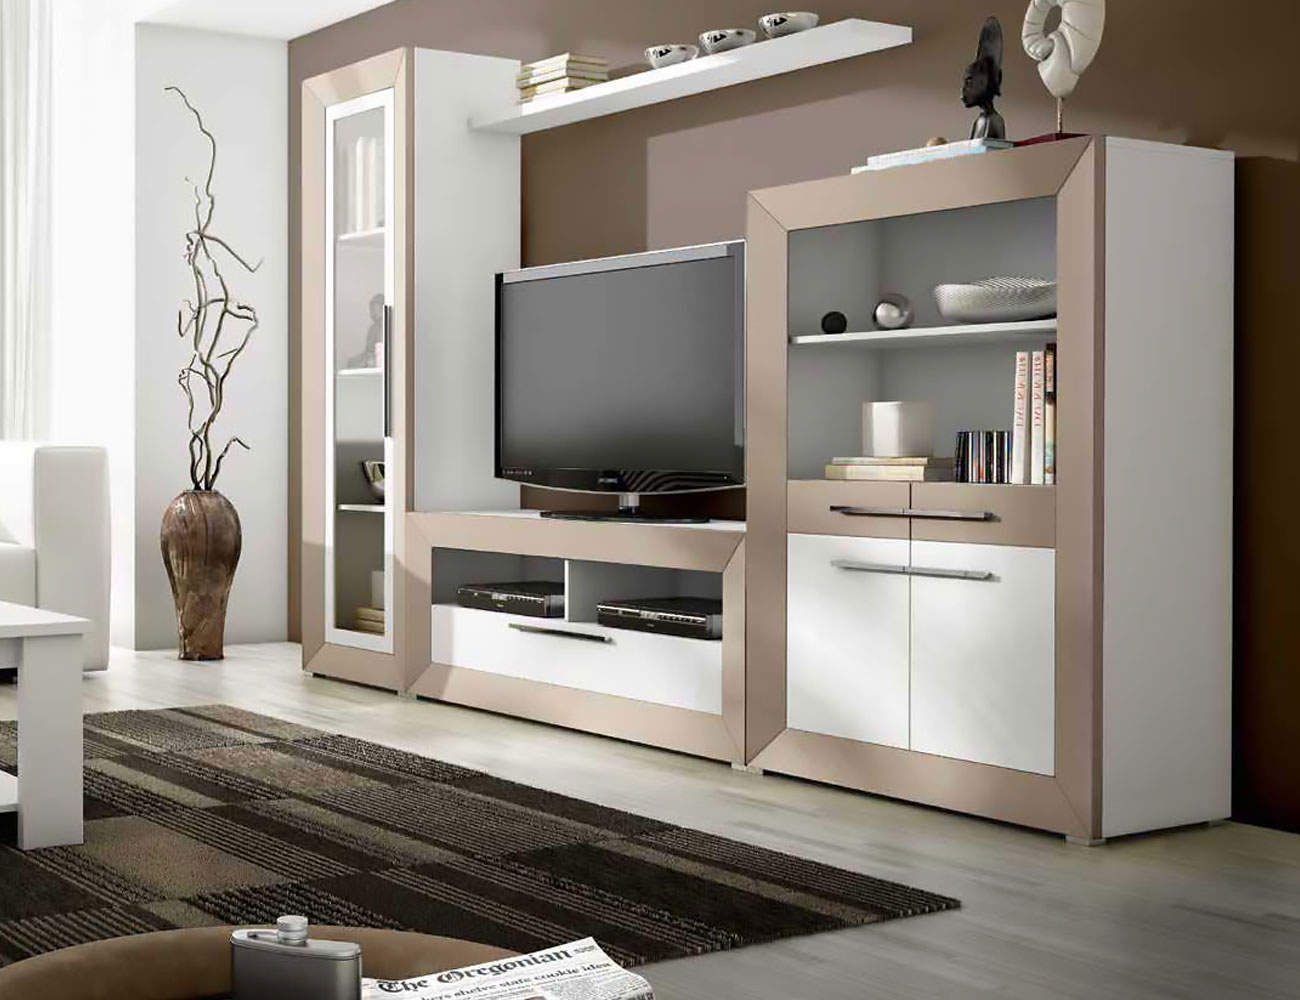 Mueble de sal n moderno en blanco con vis n 2400 for Muebles de salon clasicos en blanco